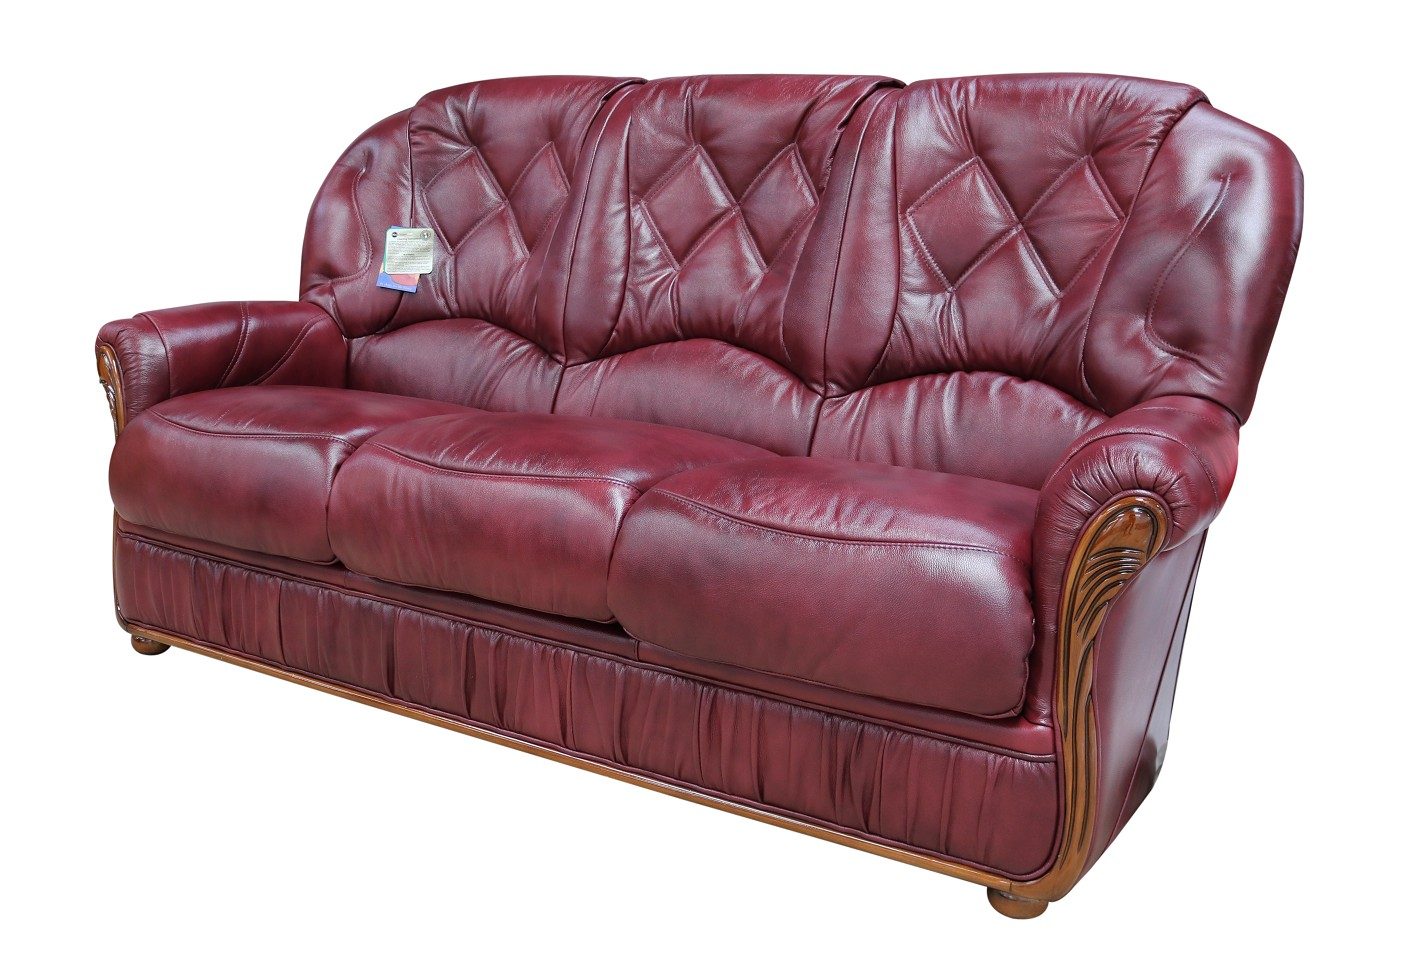 Tremendous Rome Genuine Italian Leather 3 Seater Sofa Settee Burgundy Machost Co Dining Chair Design Ideas Machostcouk